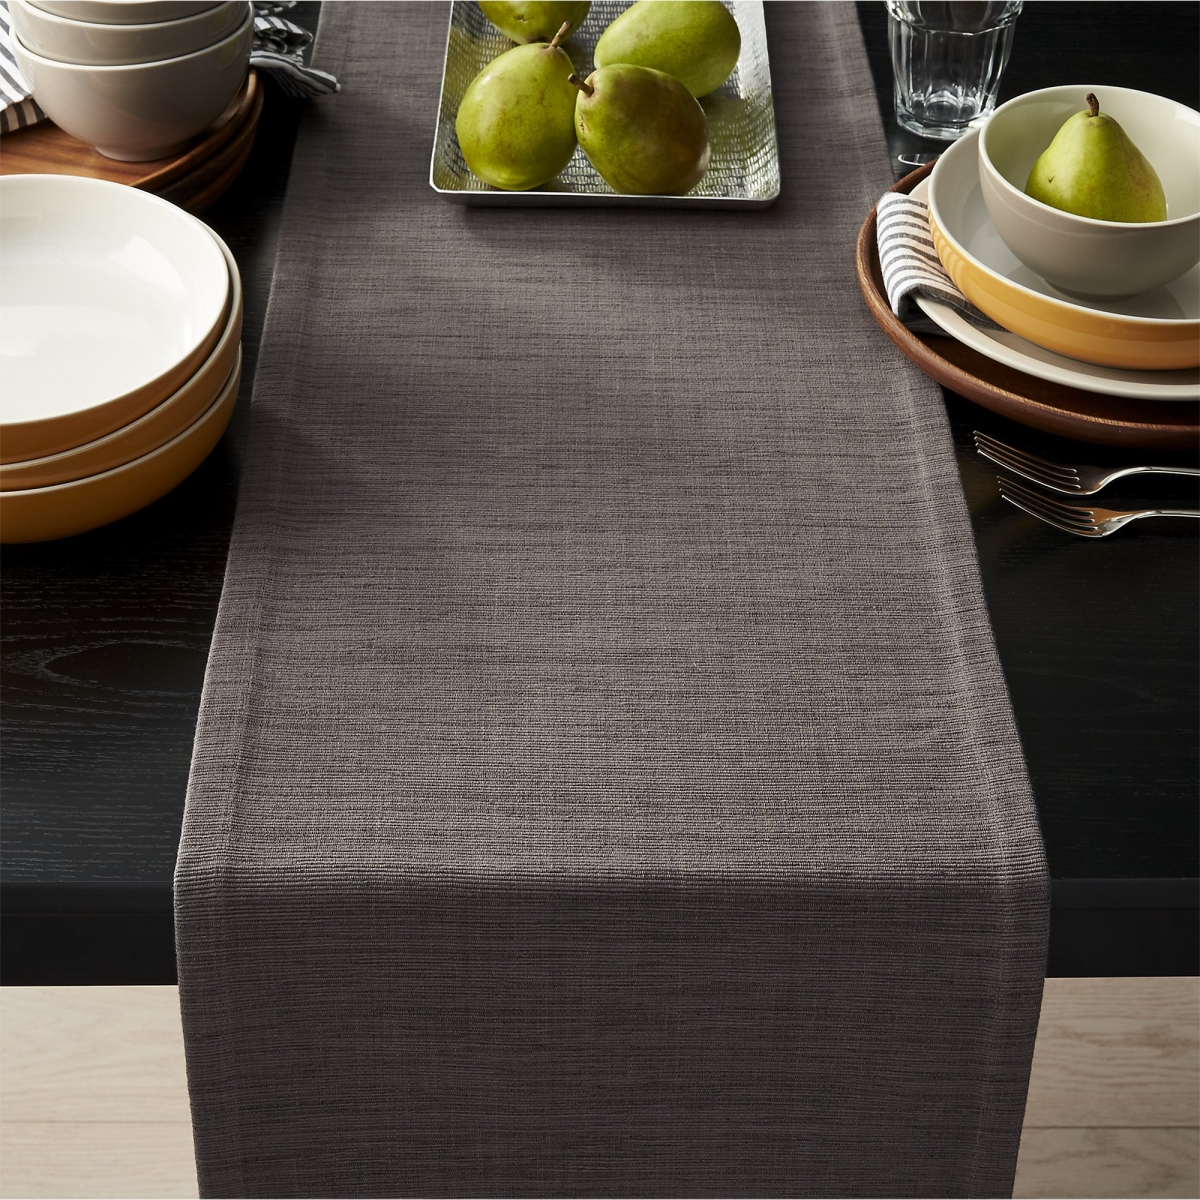 The Hunt For The Perfect Table Runner